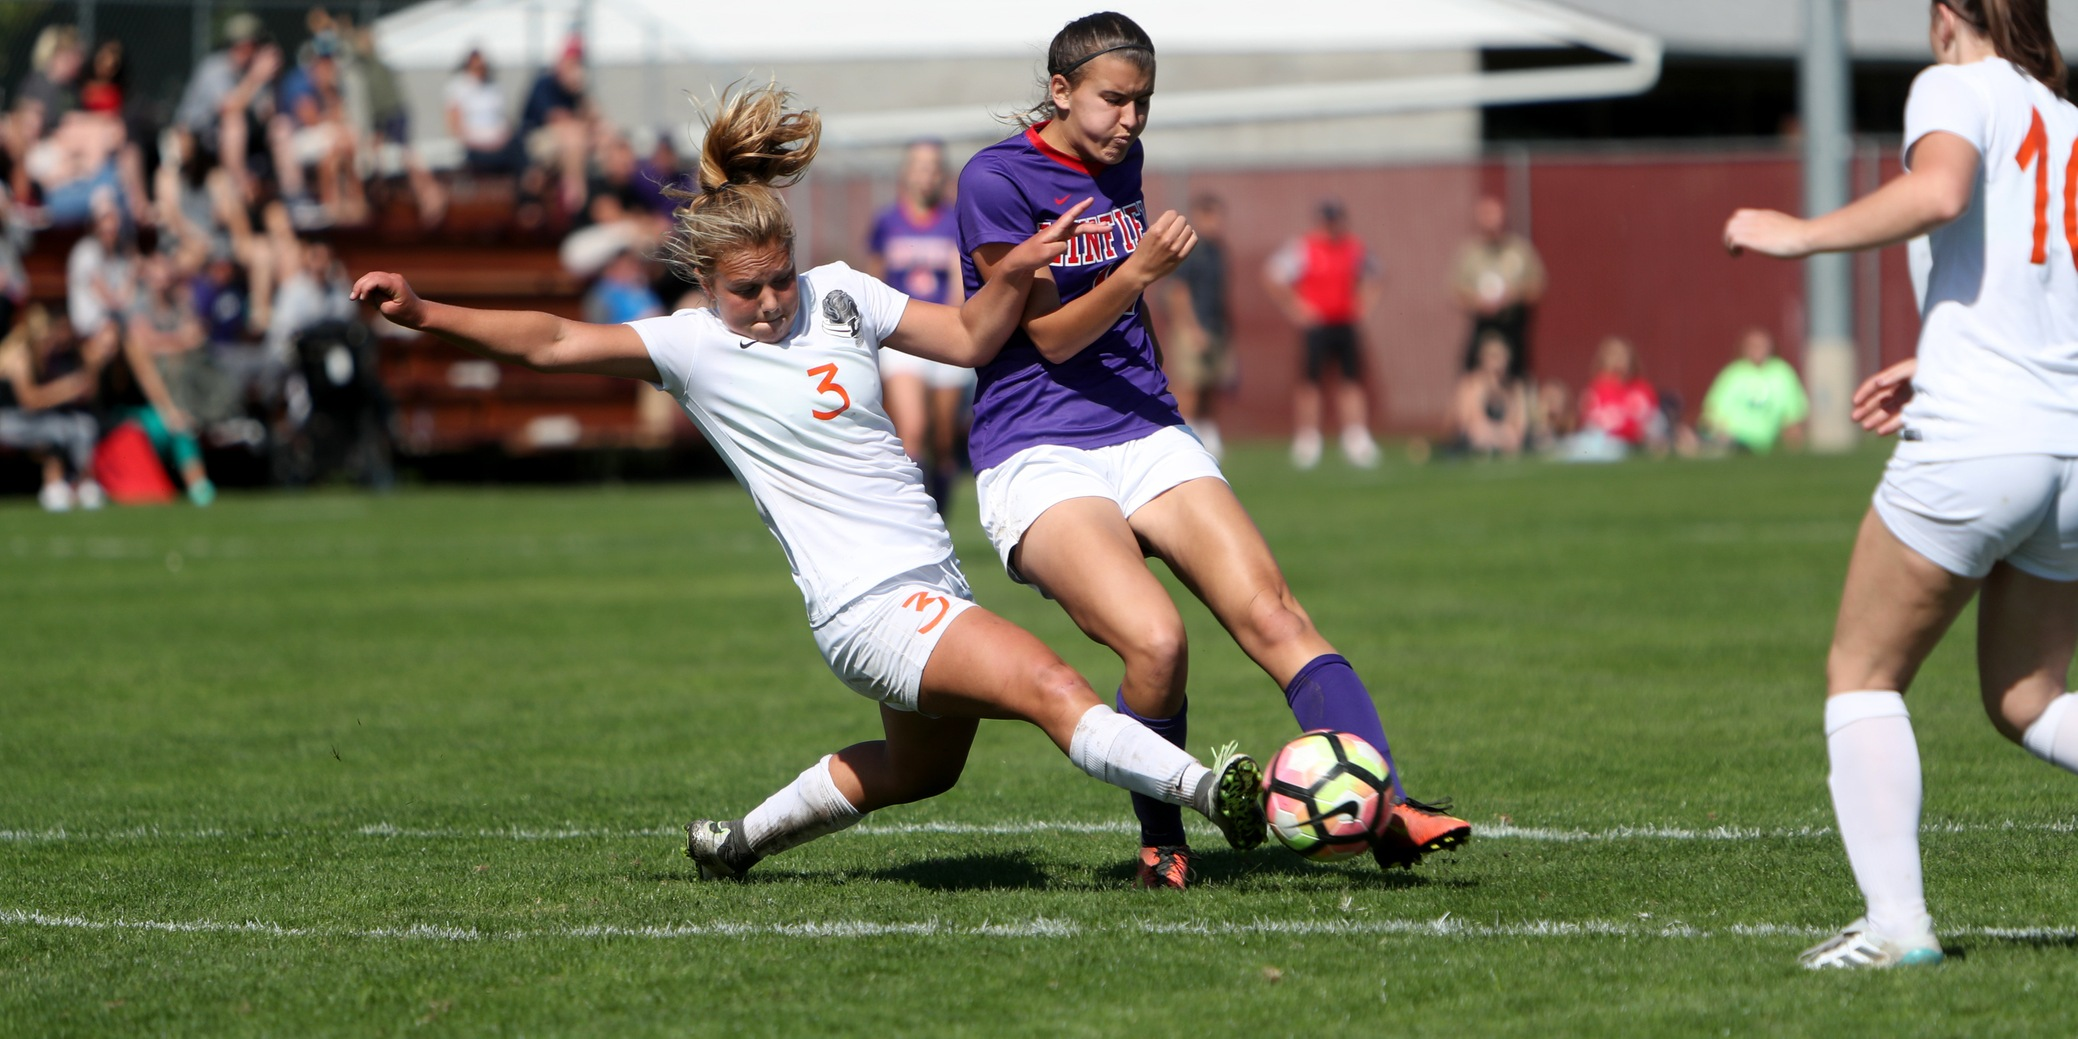 Offensive woes hinder Pios in loss at Linfield